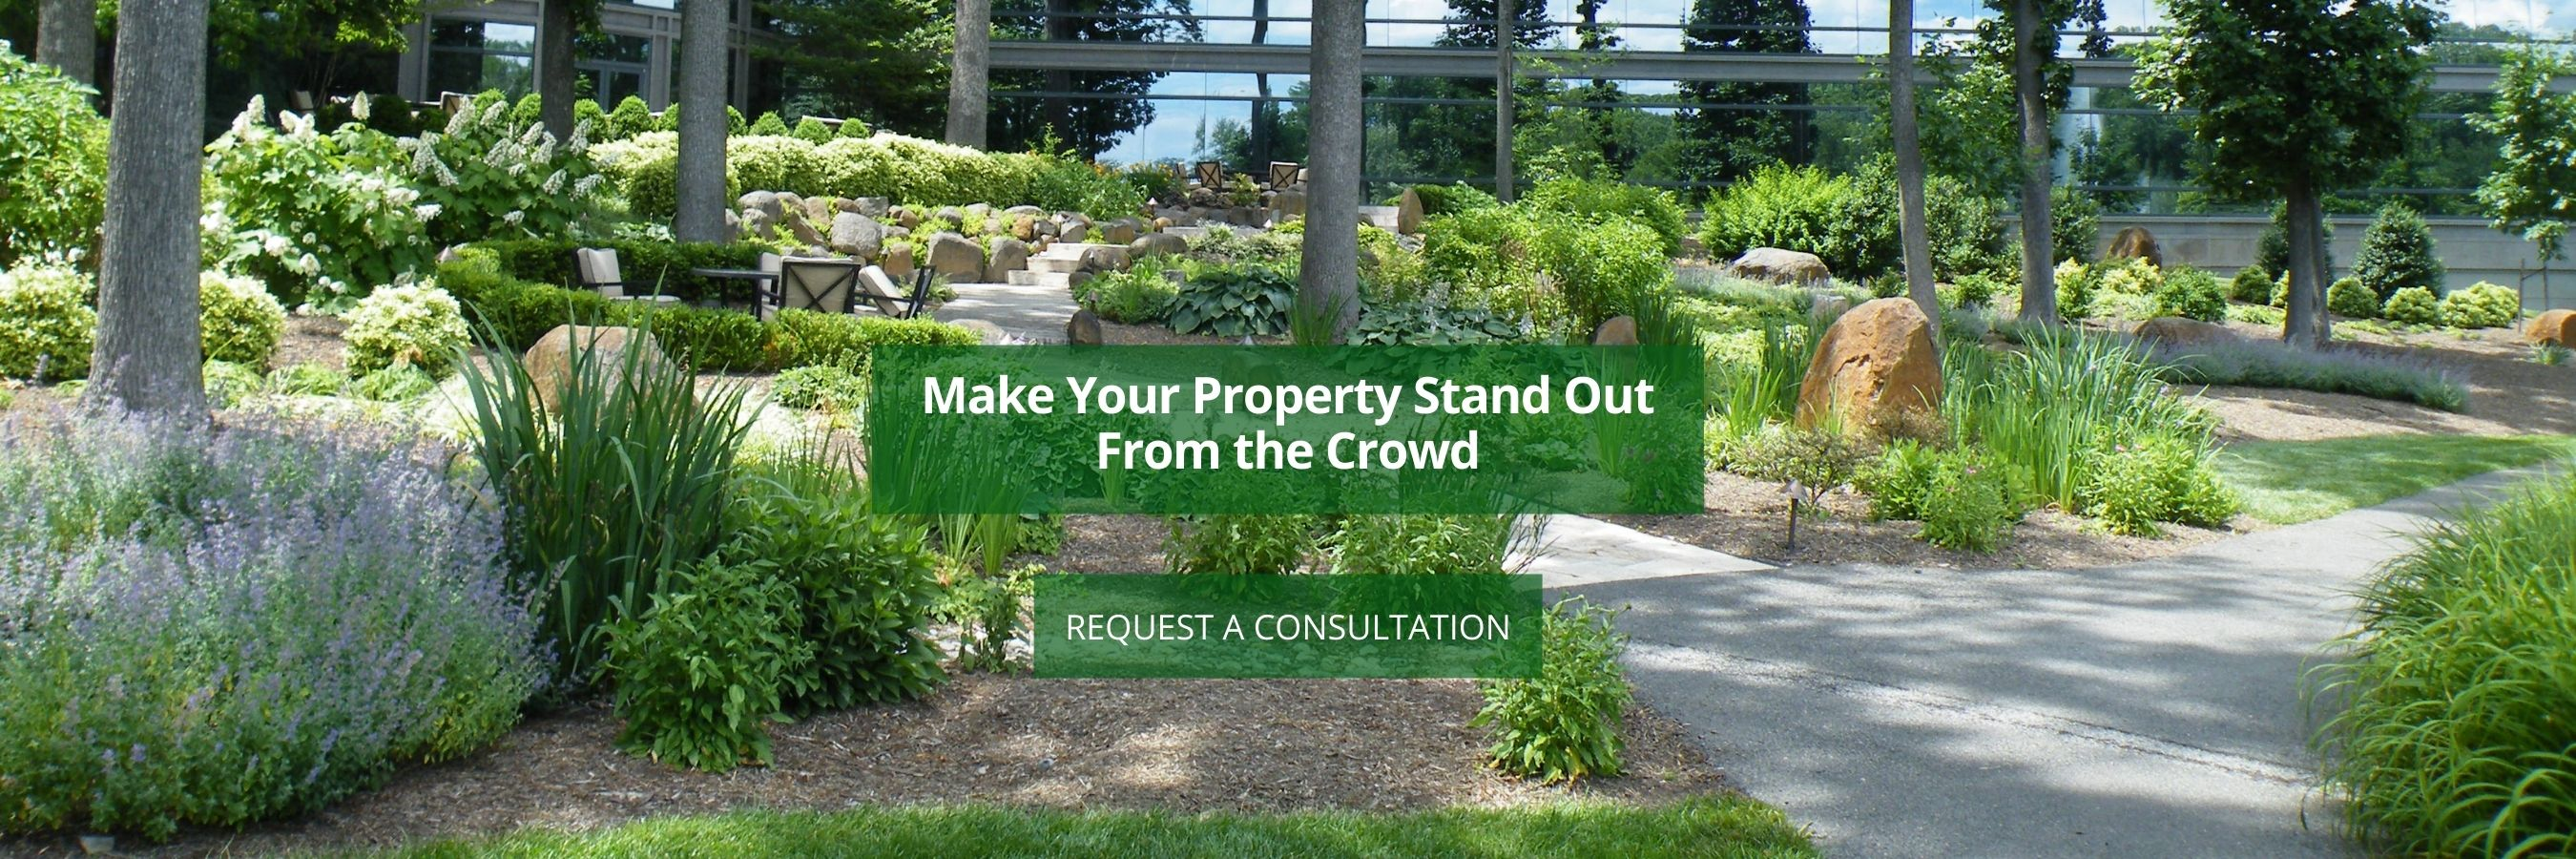 Commercial Landscaping Complete Landscaping Service MD, DC, VA